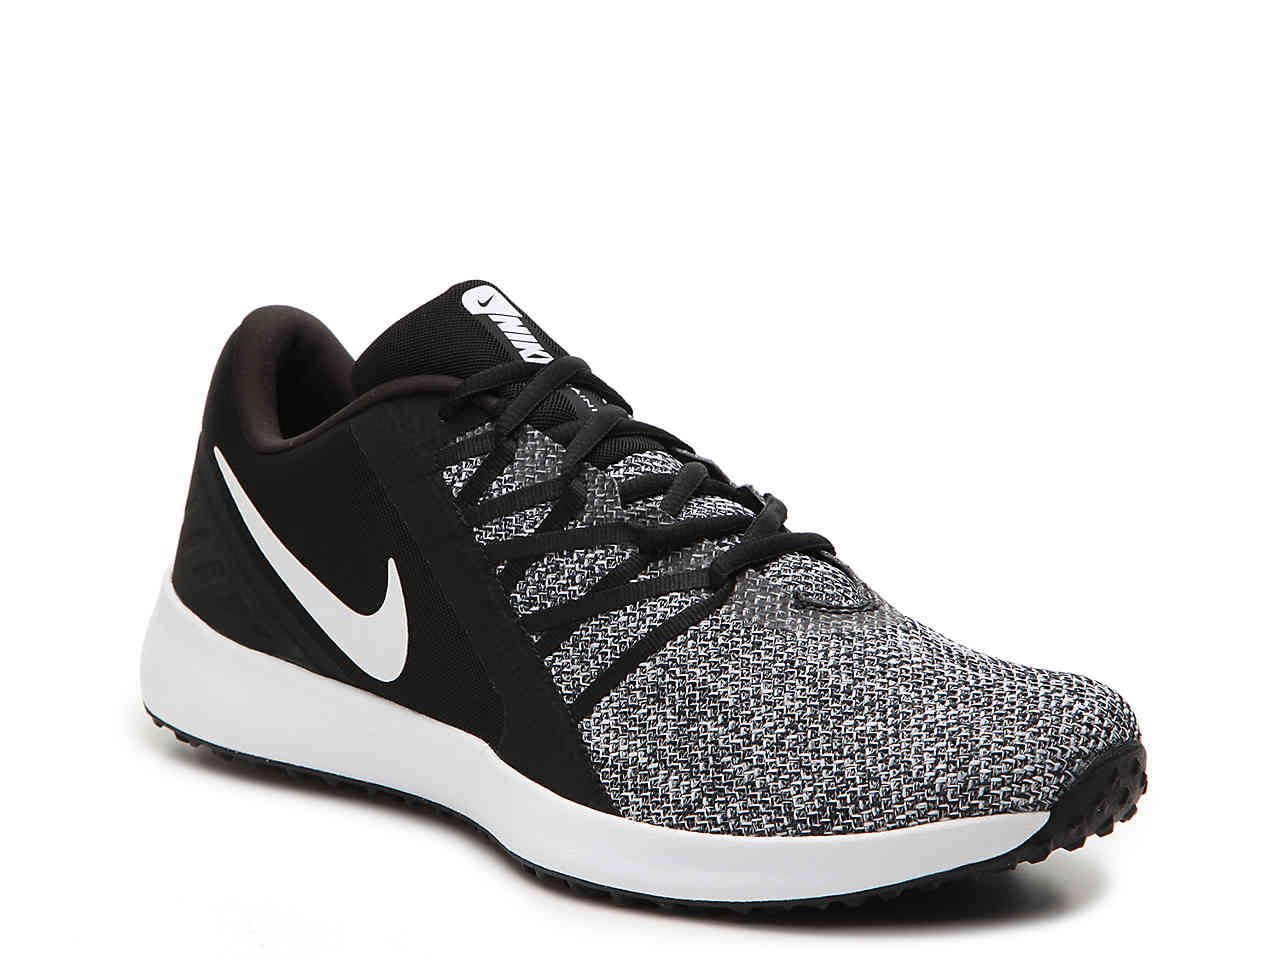 Best Nike Training Shoes for the Gym